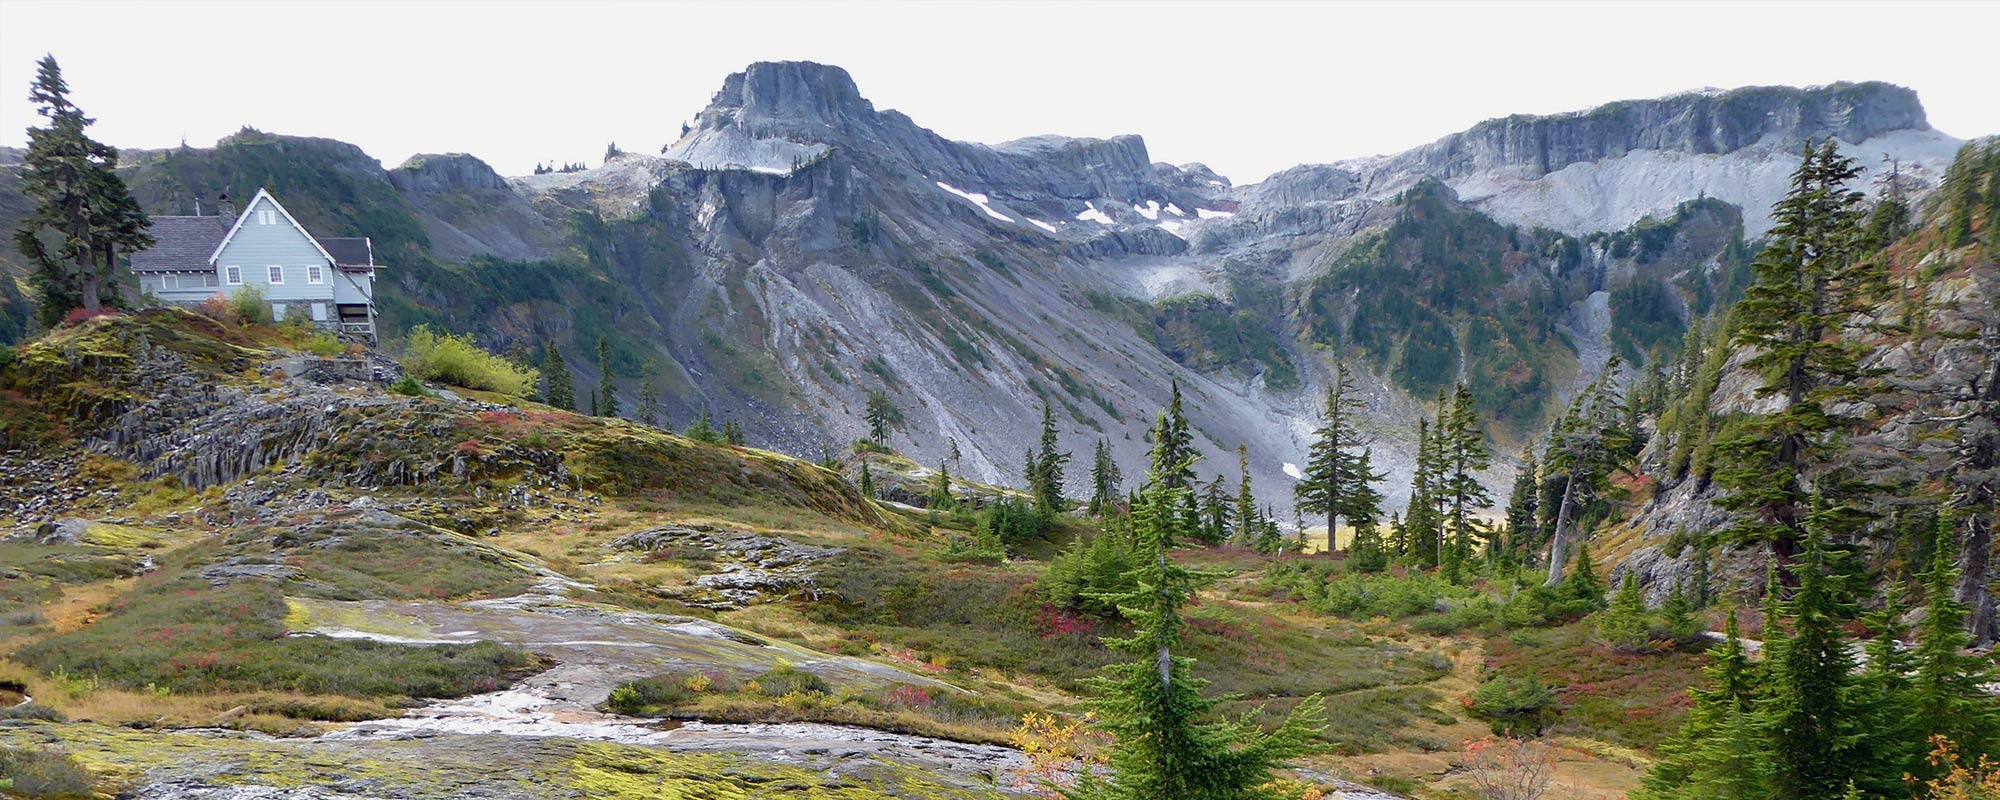 guided fall tours in the north cascades